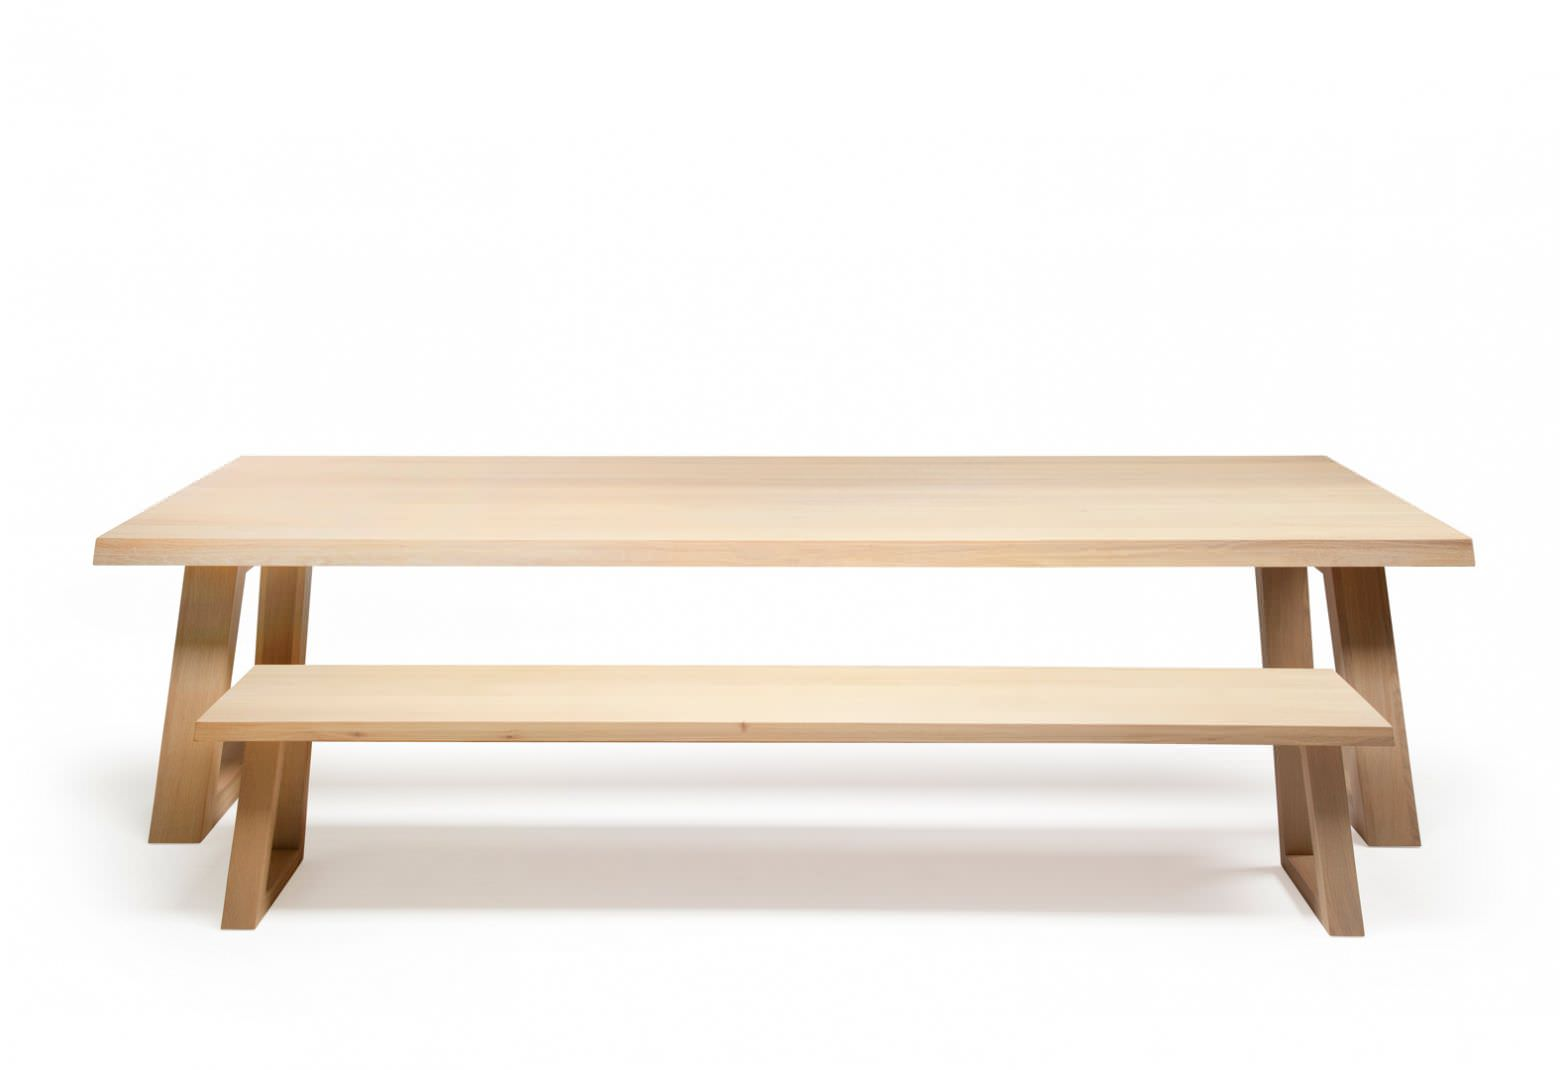 Contemporary Bench / Wooden SLIDE By Remy Meijers Odesi.